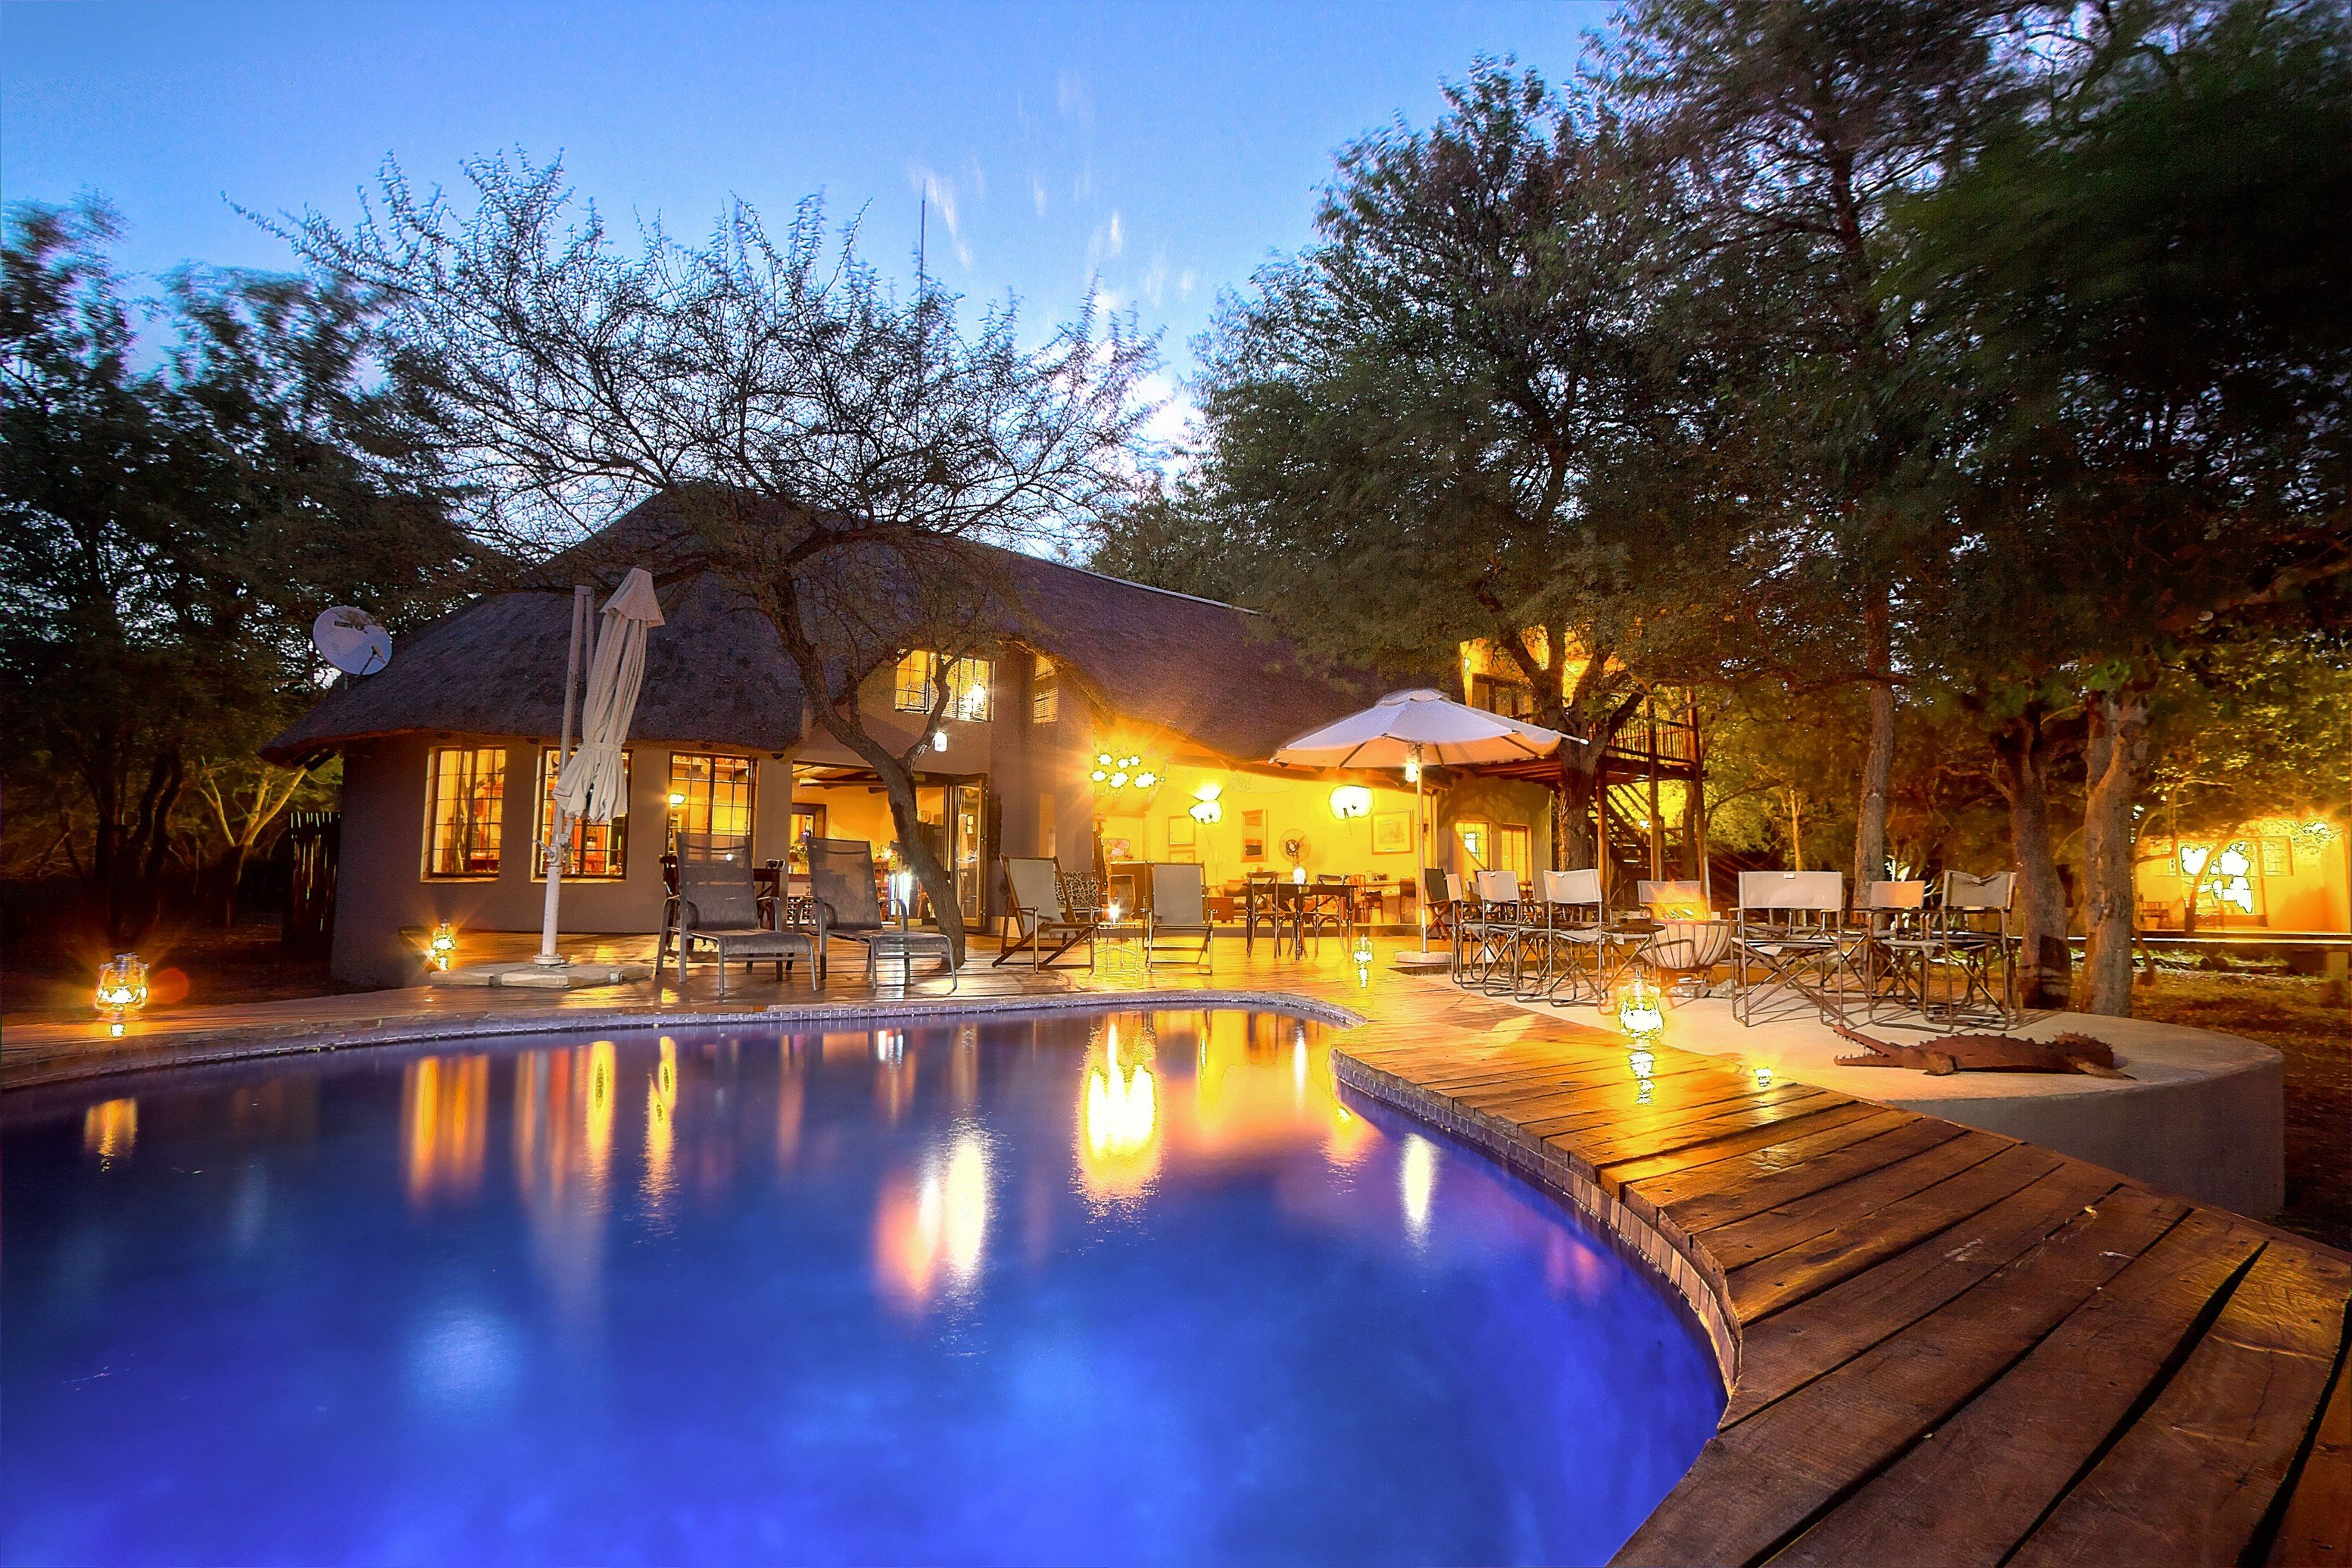 Mvuradona Safari Lodge